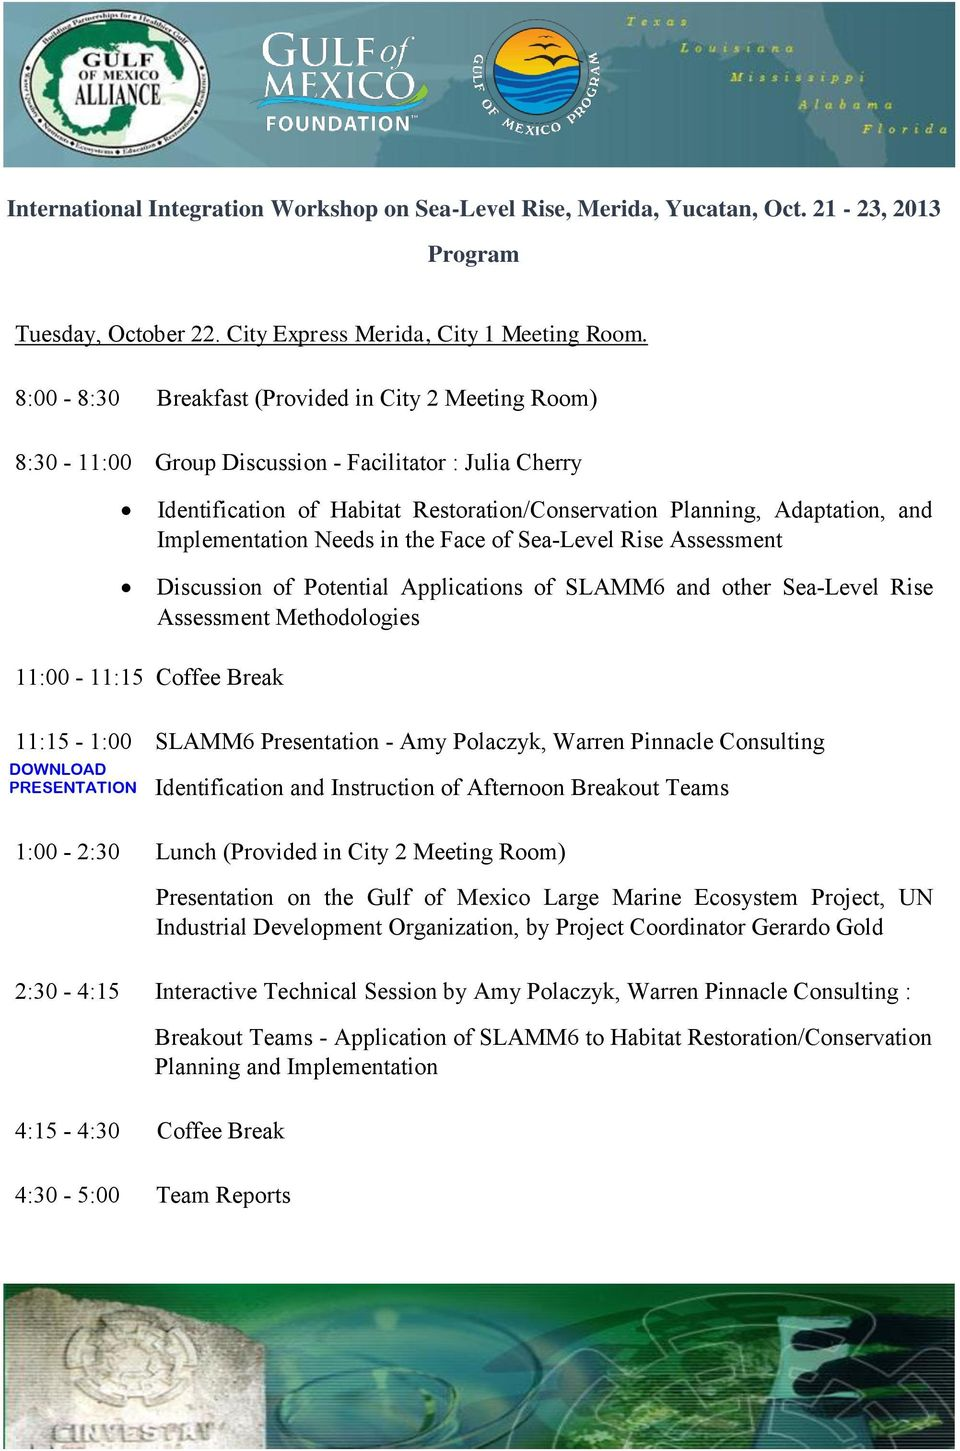 Implementation Needs in the Face of Sea-Level Rise Assessment Discussion of Potential Applications of SLAMM6 and other Sea-Level Rise Assessment Methodologies 11:00-11:15 Coffee Break 11:15-1:00